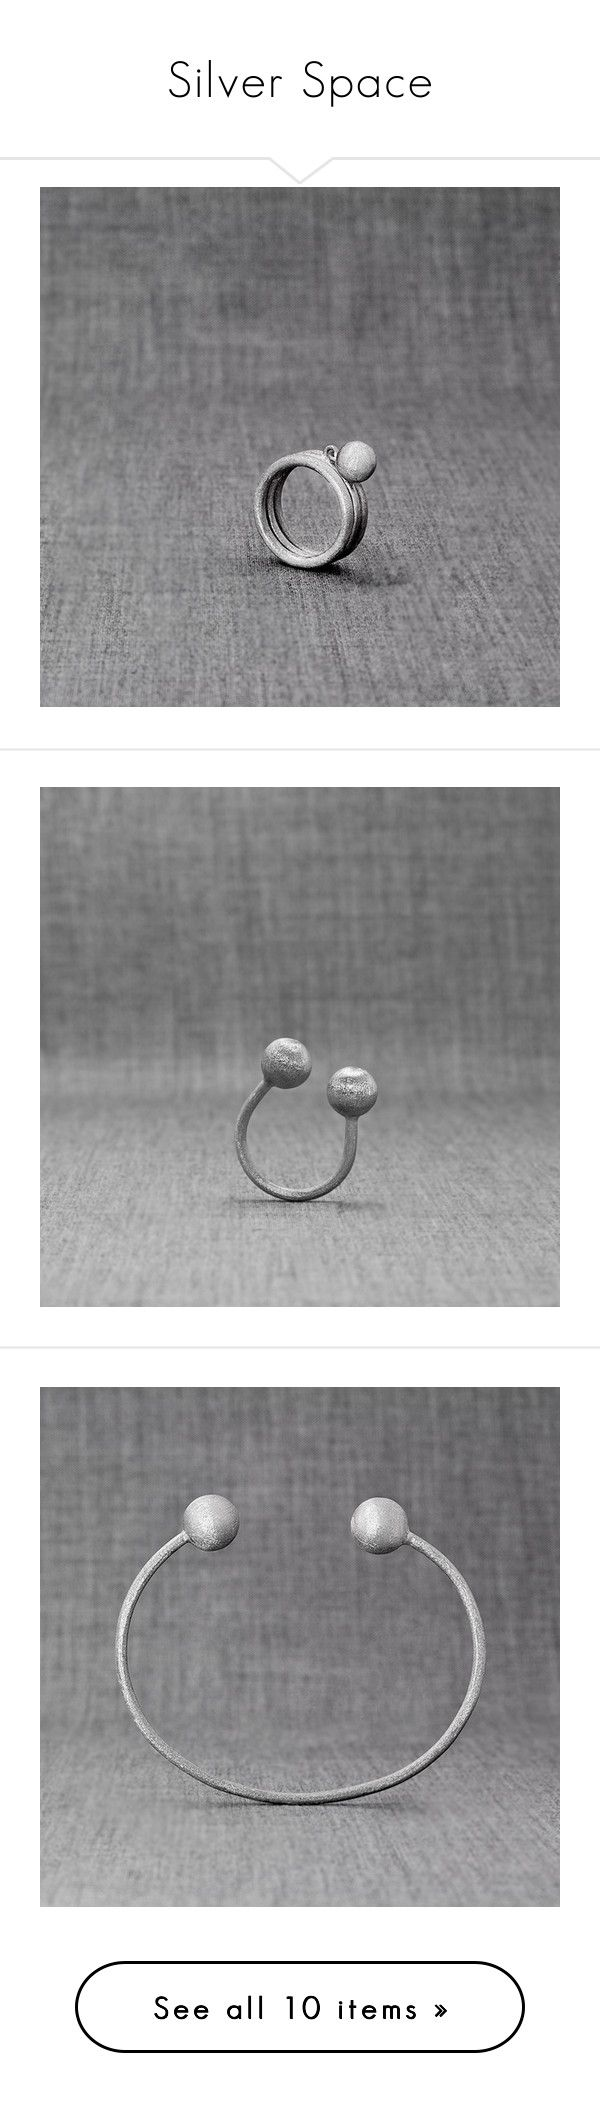 """""""Silver Space"""" by kissthecrownedfrog on Polyvore featuring jewelry, rings, earrings, bracelets, bracelet bangle, cosmic jewelry, bracelet jewelry, handcrafted earrings, silver jewelry and handcrafted silver jewellery"""